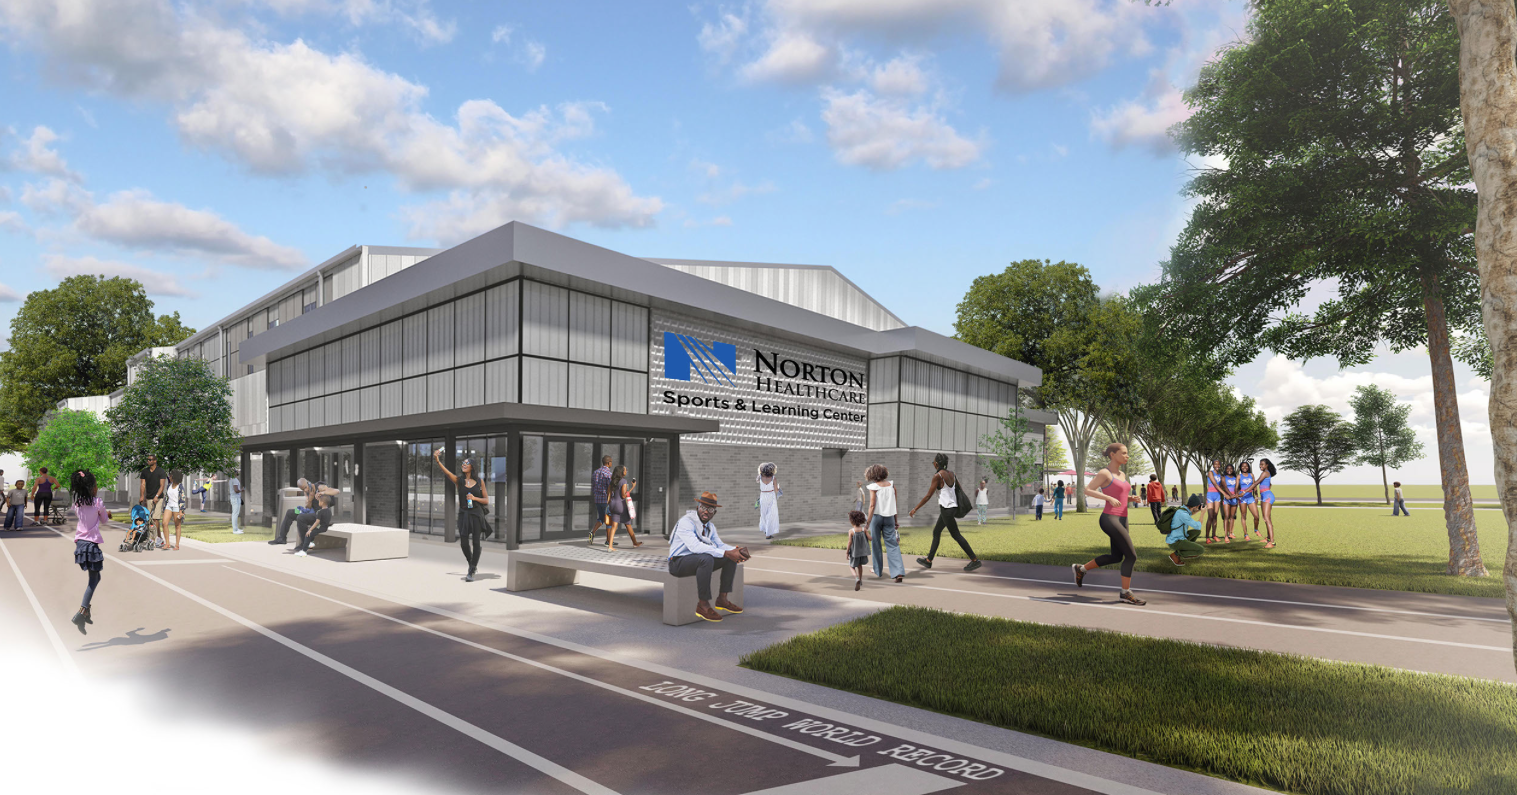 Norton Healthcare Sports & Learning Center